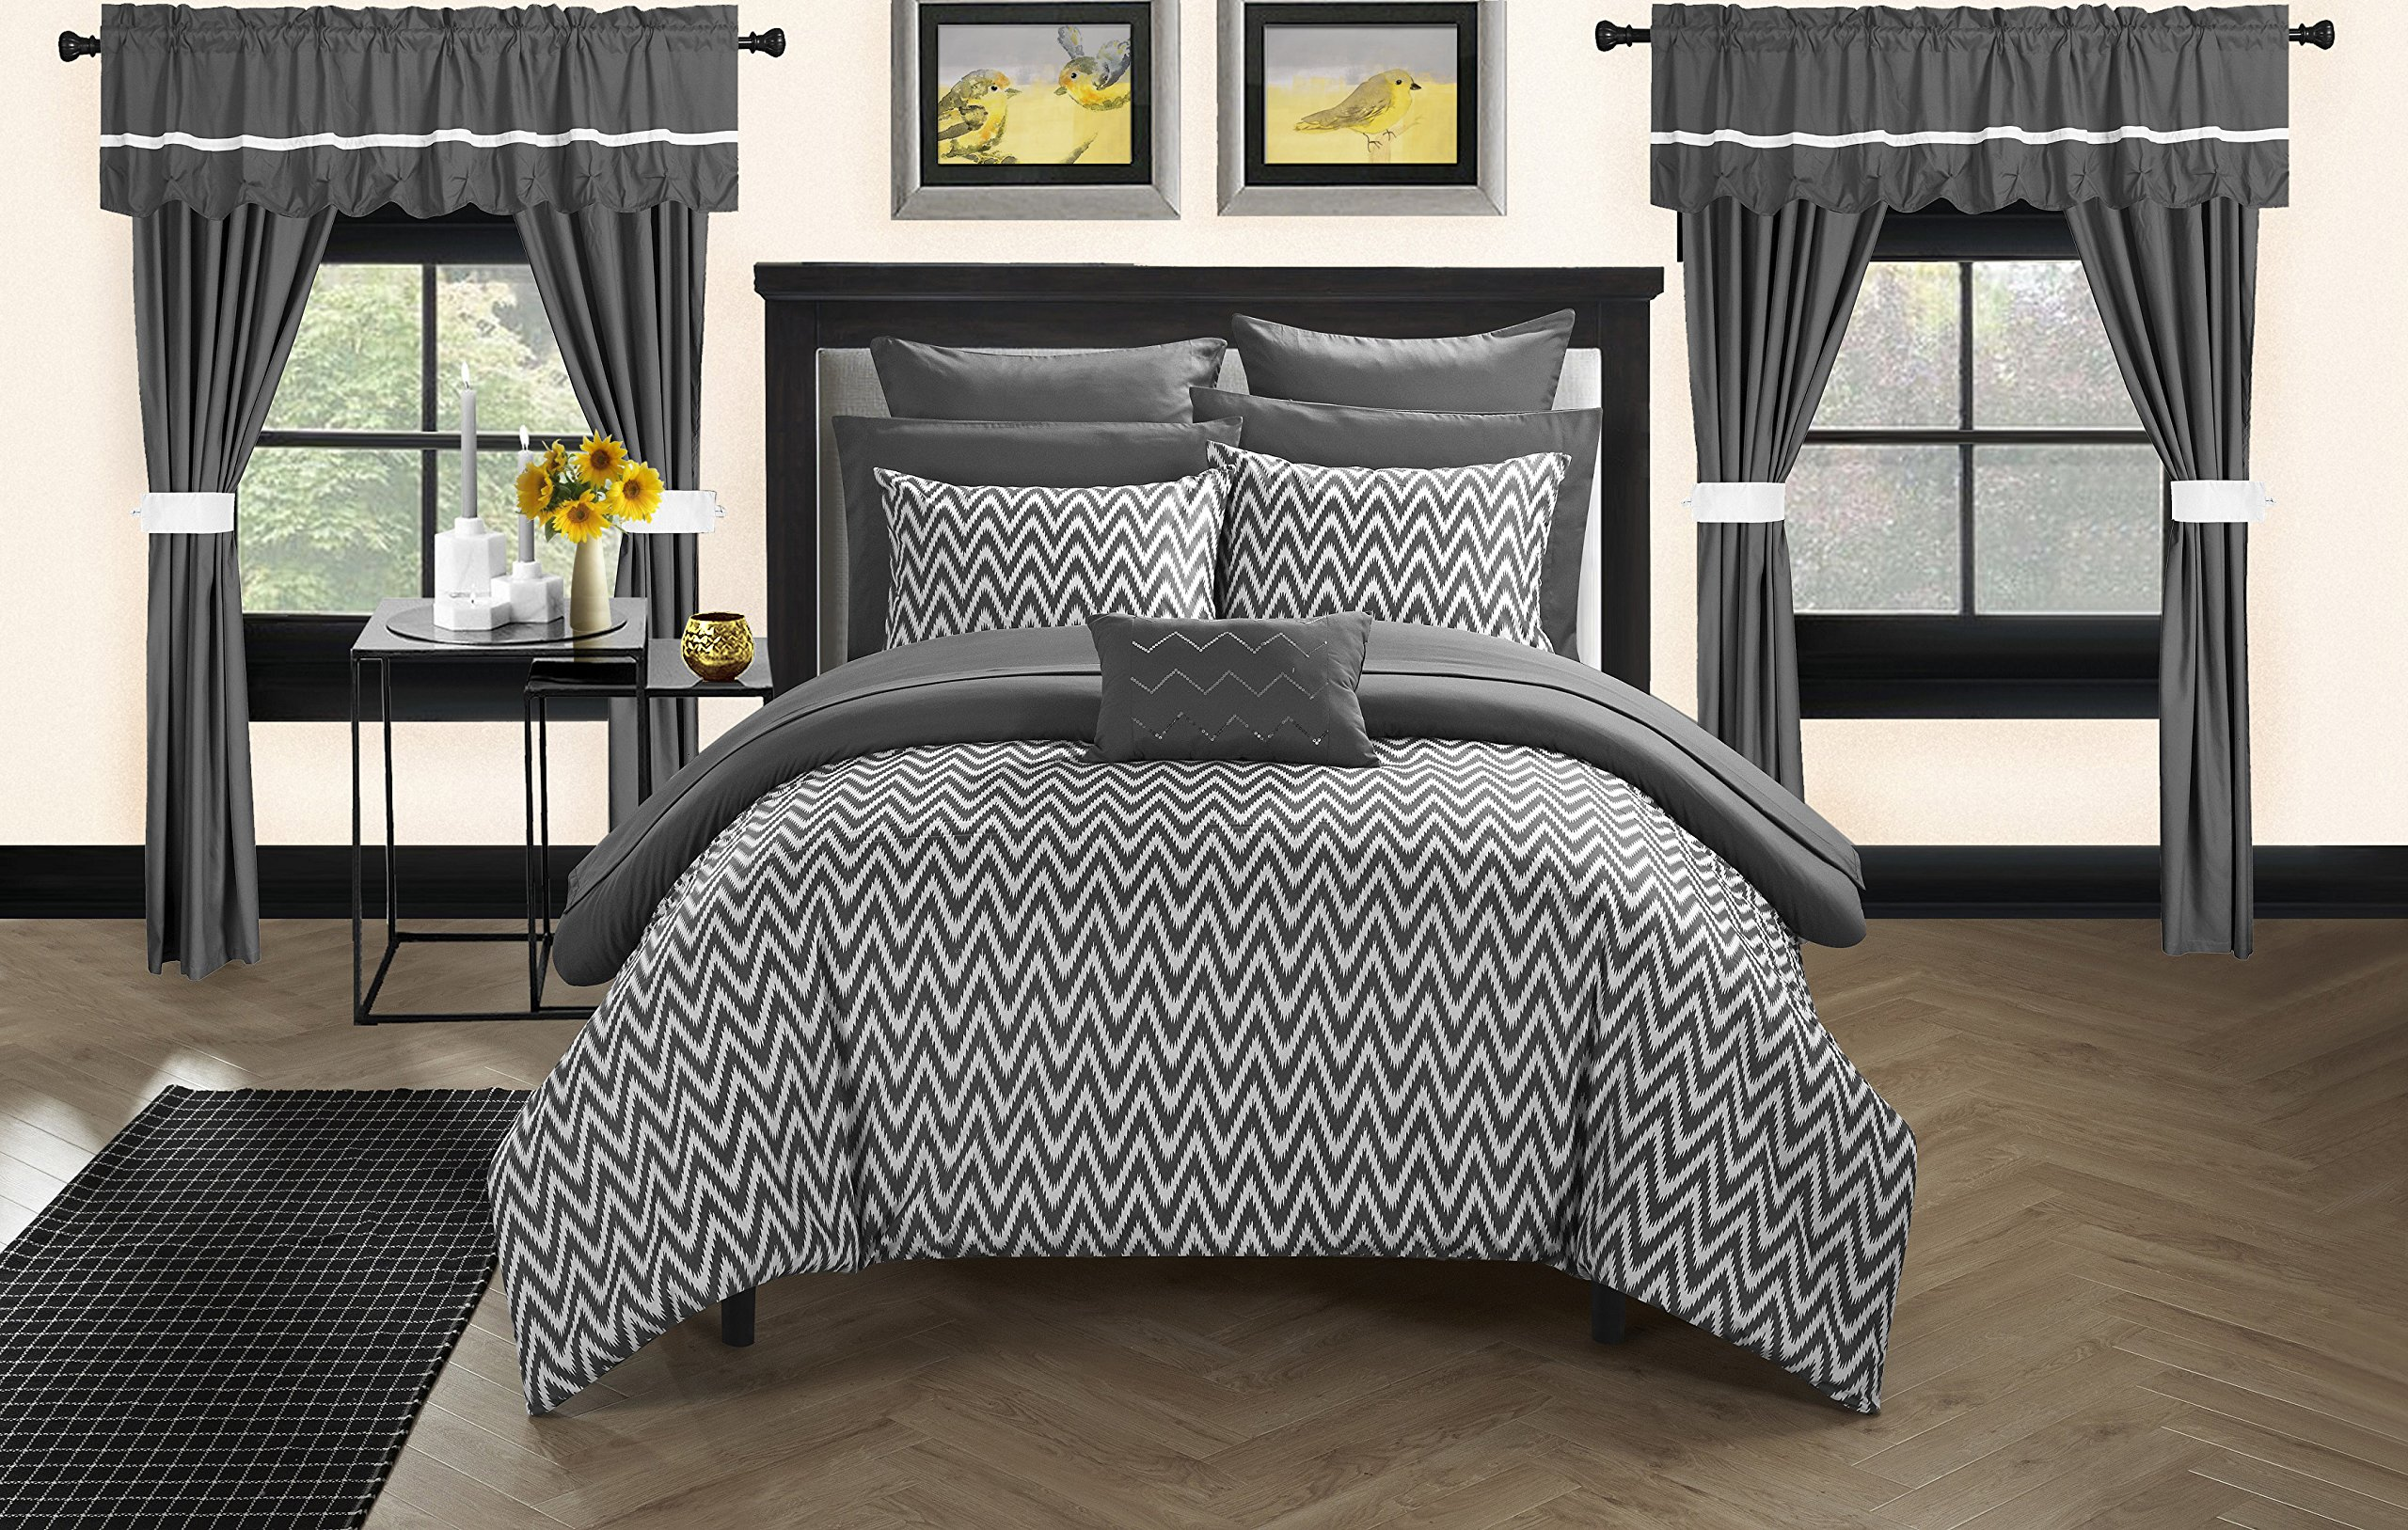 Chic Home CS0586-AN 20 Piece Jacksonville Complete Bed Room In A Bag Super Pinch Pleated Design Reversible Chevron Pattern Comforter Set, Sheet, Window Treatments And Decorative Pillows, Queen, Grey by Chic Home (Image #3)